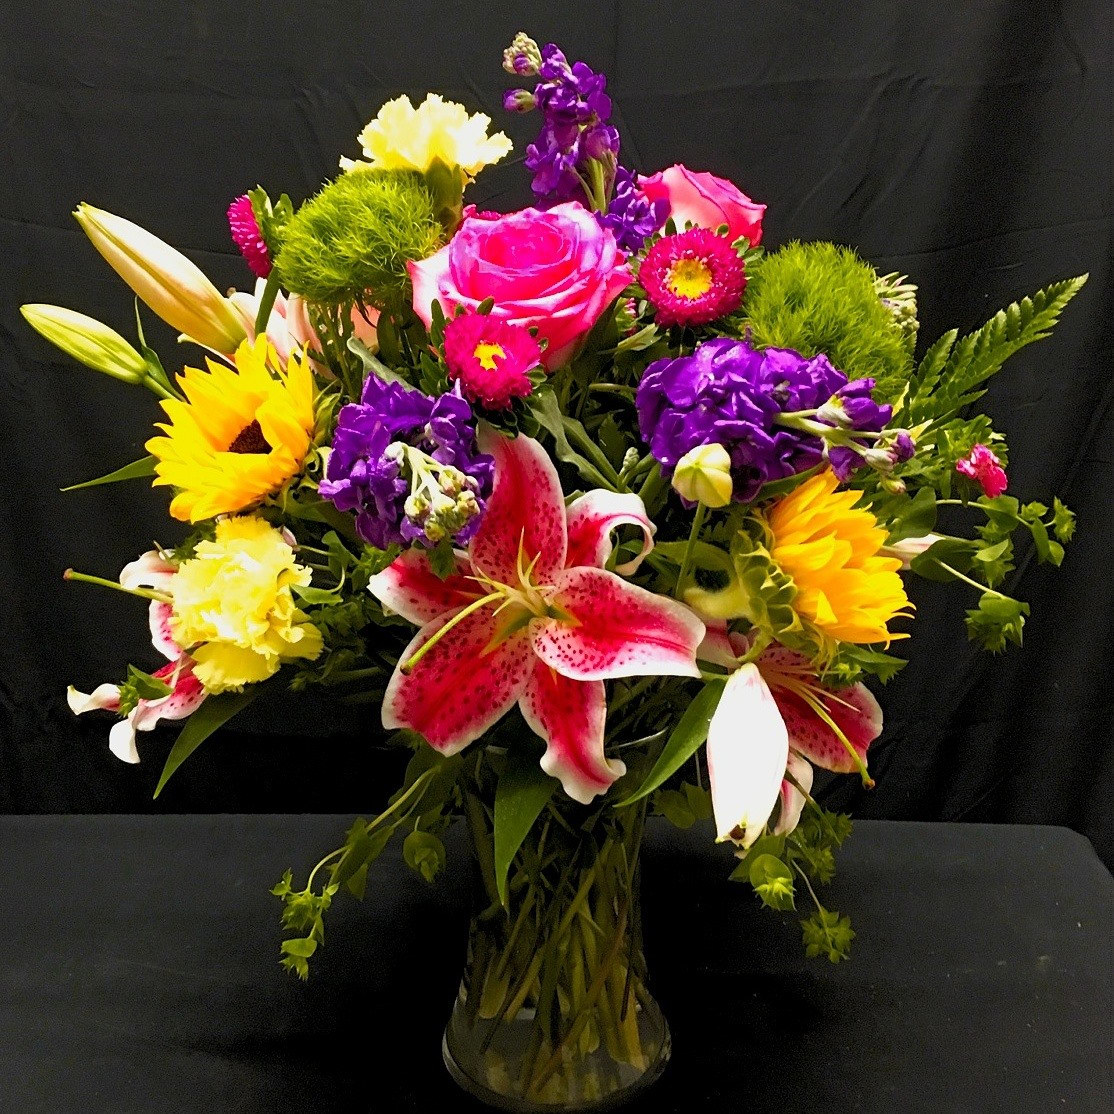 Sun & Stars - Stargazer Lilies & Sunflowers highlight this fresh floral arrangement. Accented by